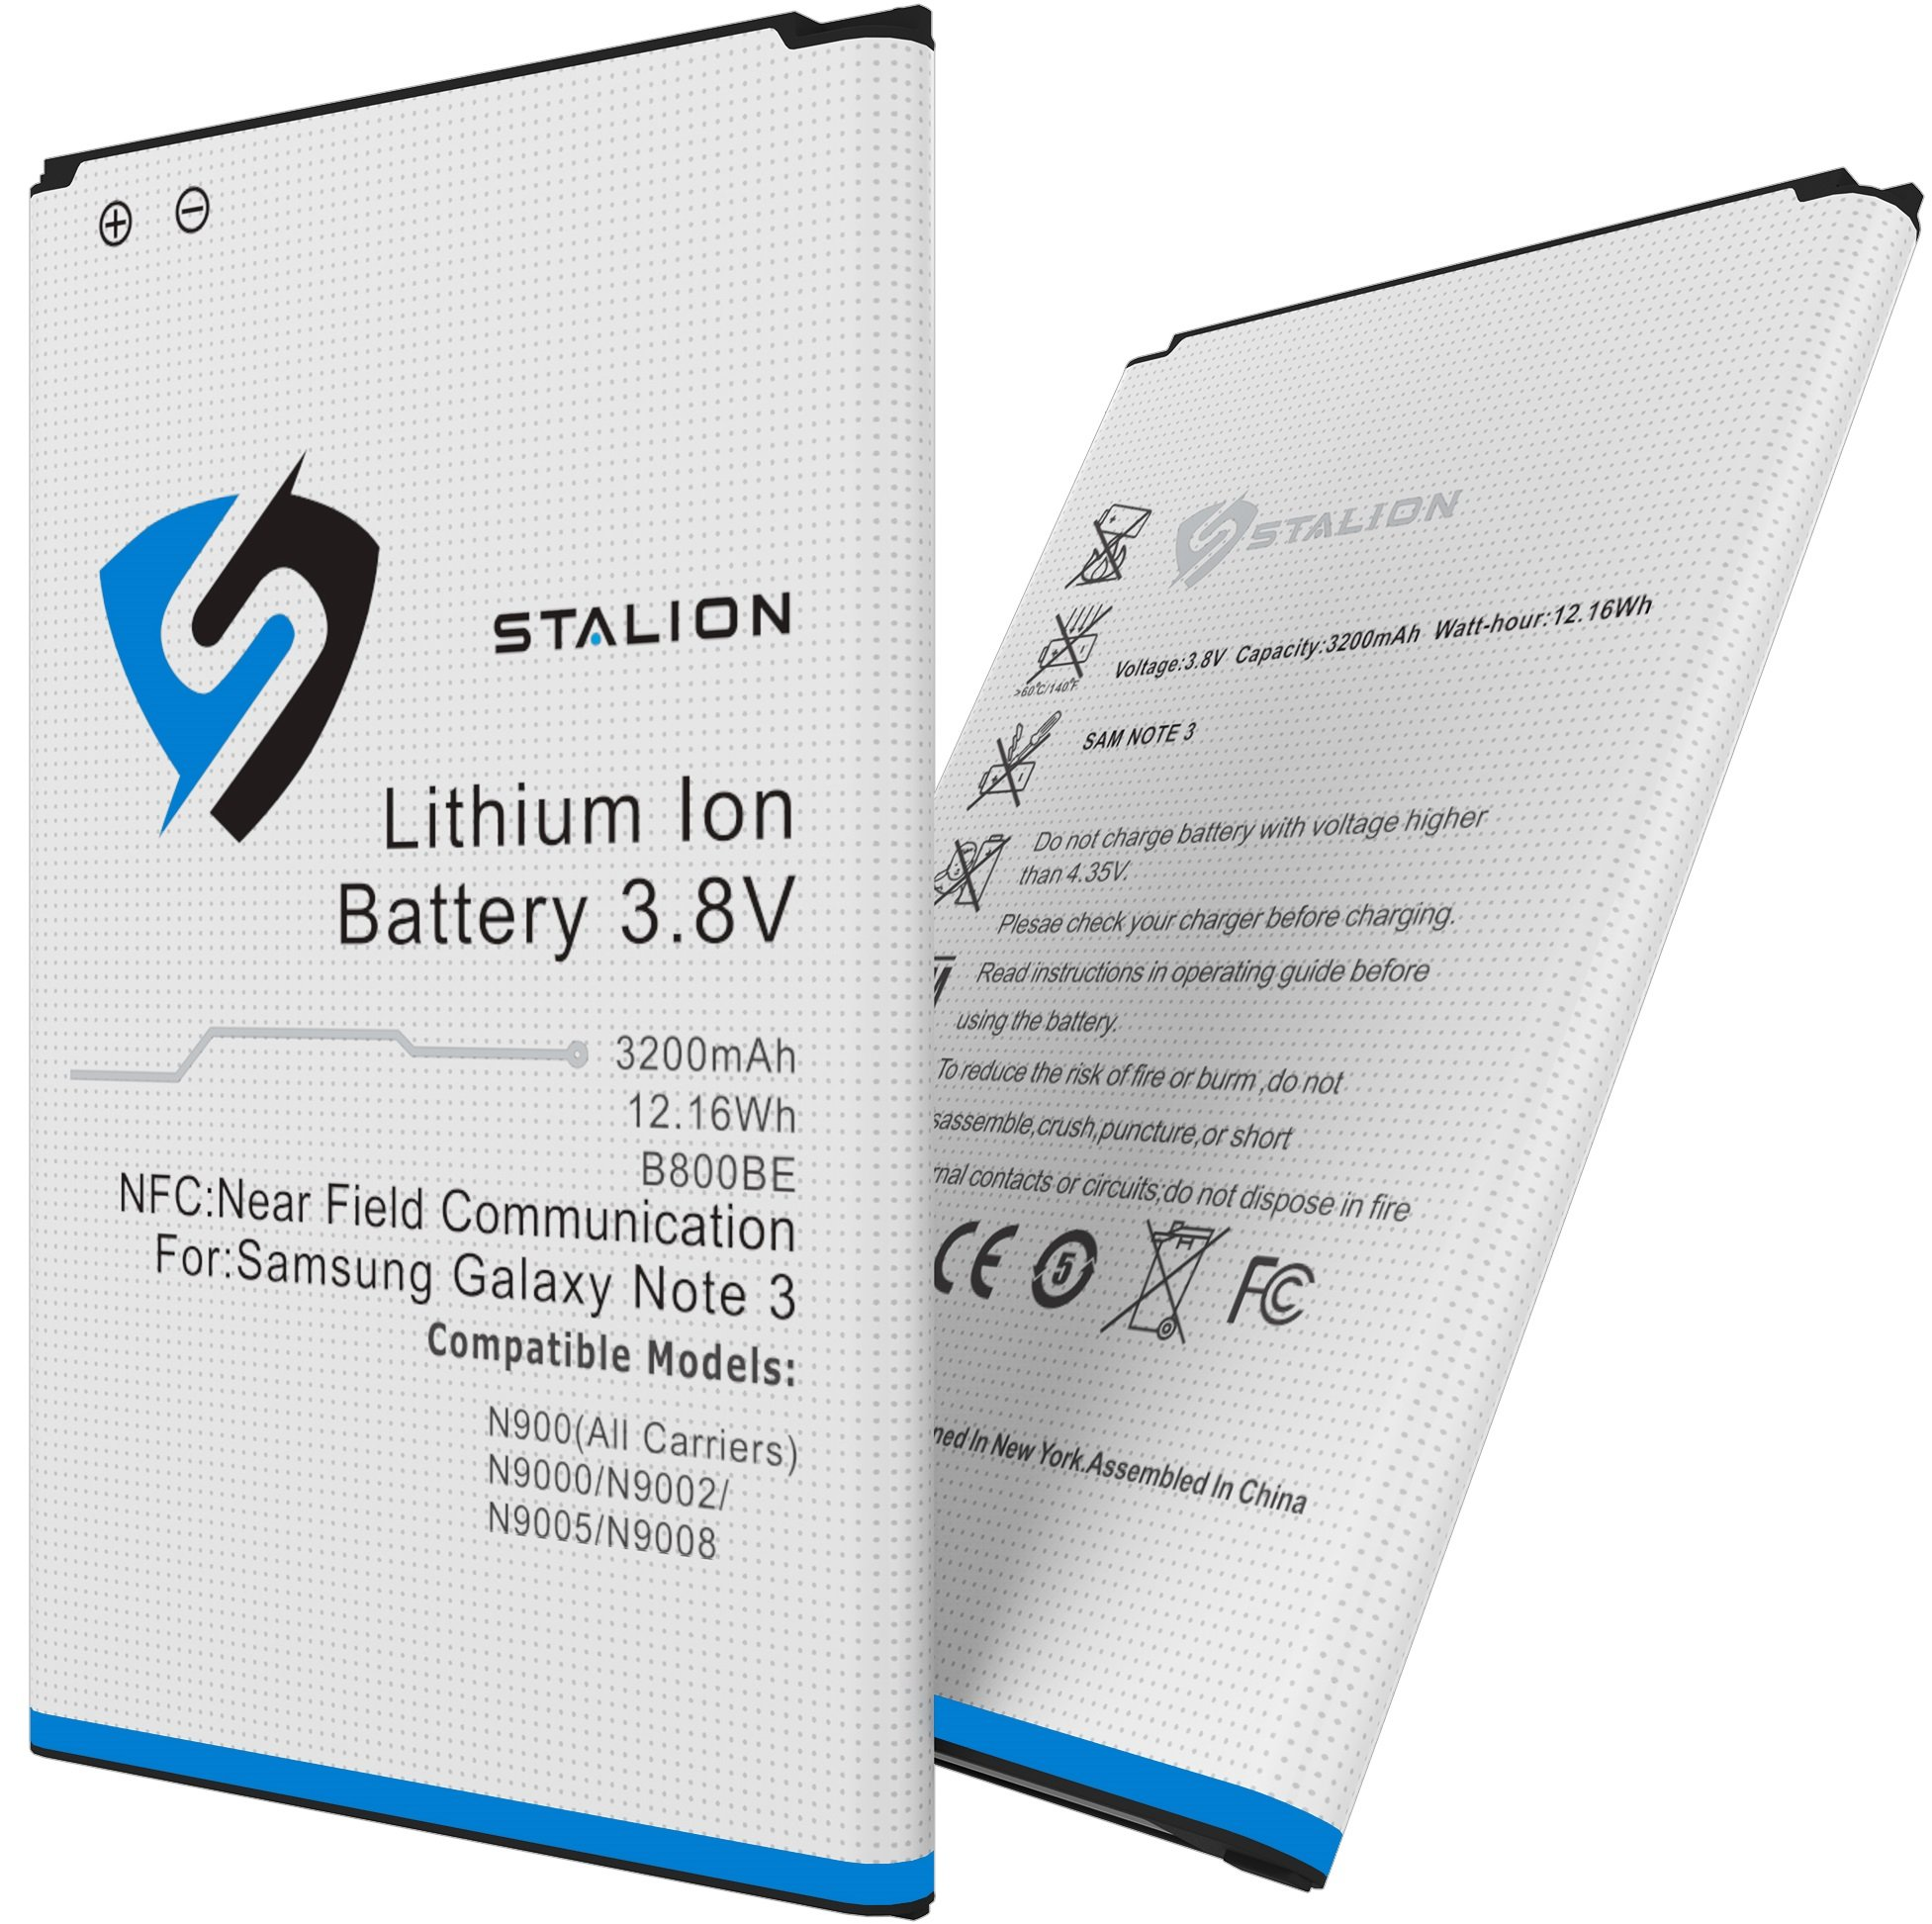 Note 3 Battery : Stalion Strength Replacement 3200mAh Li-Ion Battery for Samsung Galaxy Note 3 [24-Month Warranty] with NFC Chip + Google Wallet Capable